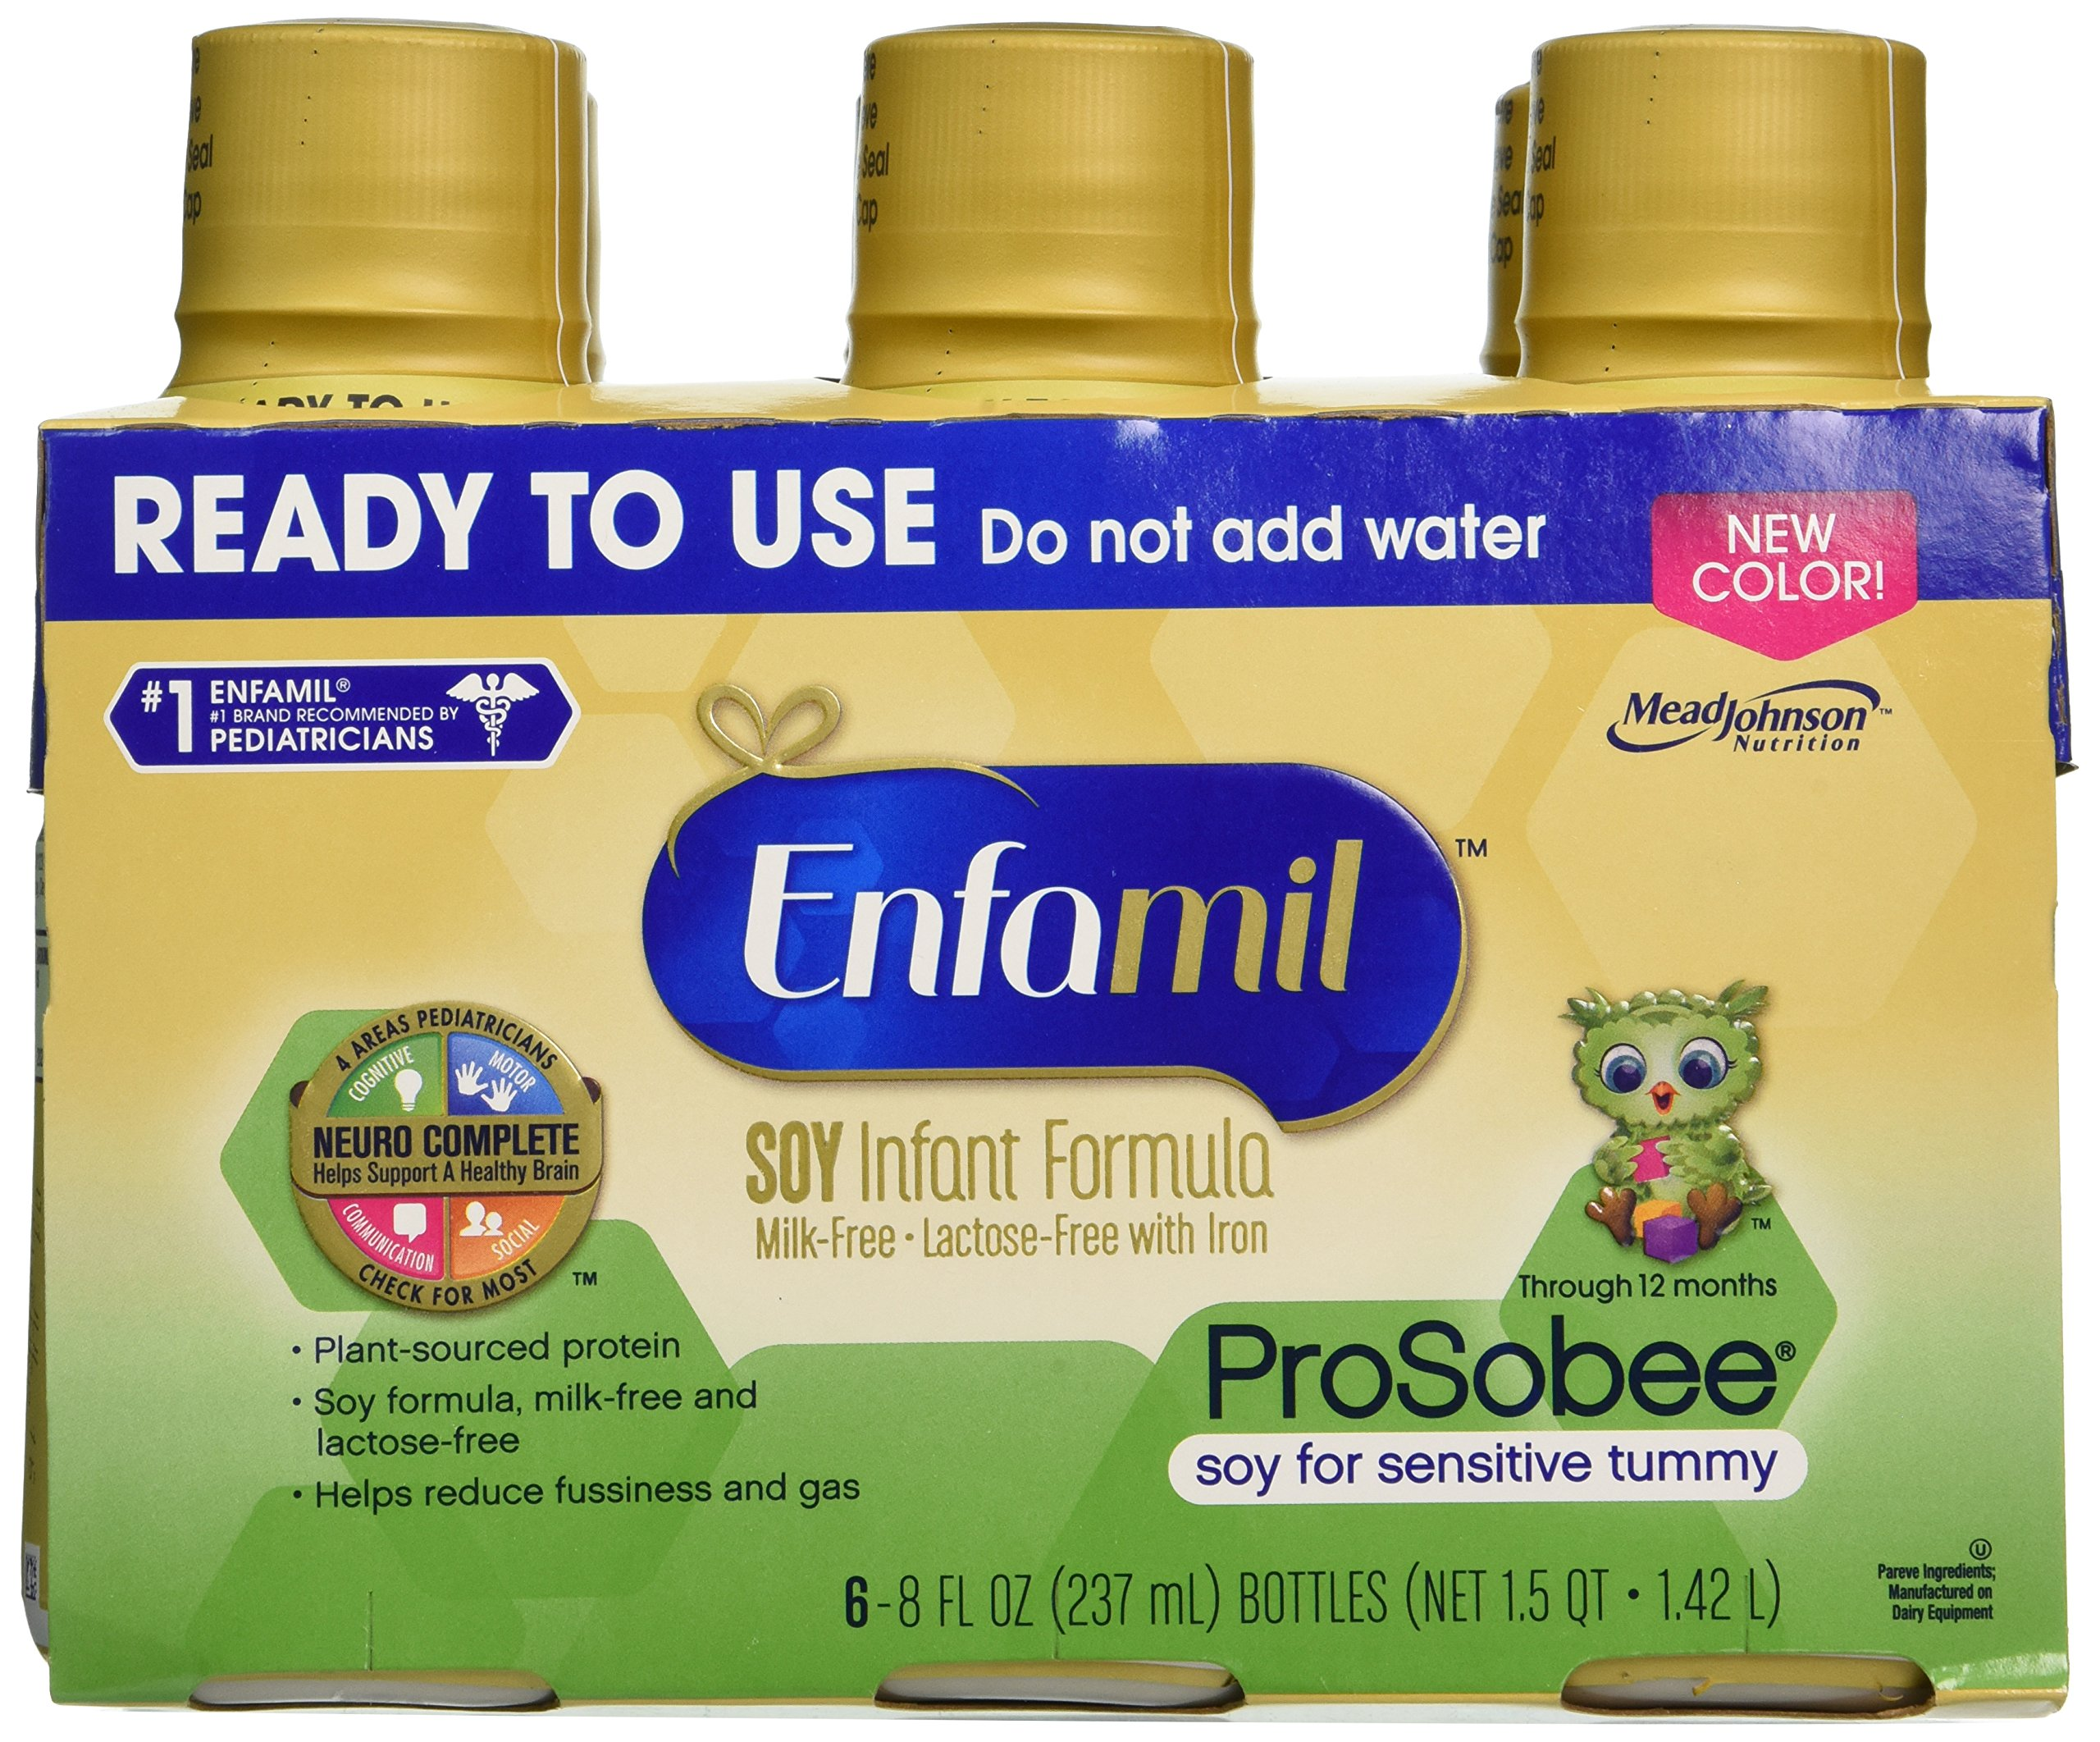 Enfamil ProSobee Soy Sensitive Baby Formula, Dairy-Free Lactose Free Plant Protein Milk Powder, 8  fluid ounce (24 count) - Omega 3 DHA, Iron, Immune & Brain Support by Enfamil (Image #2)